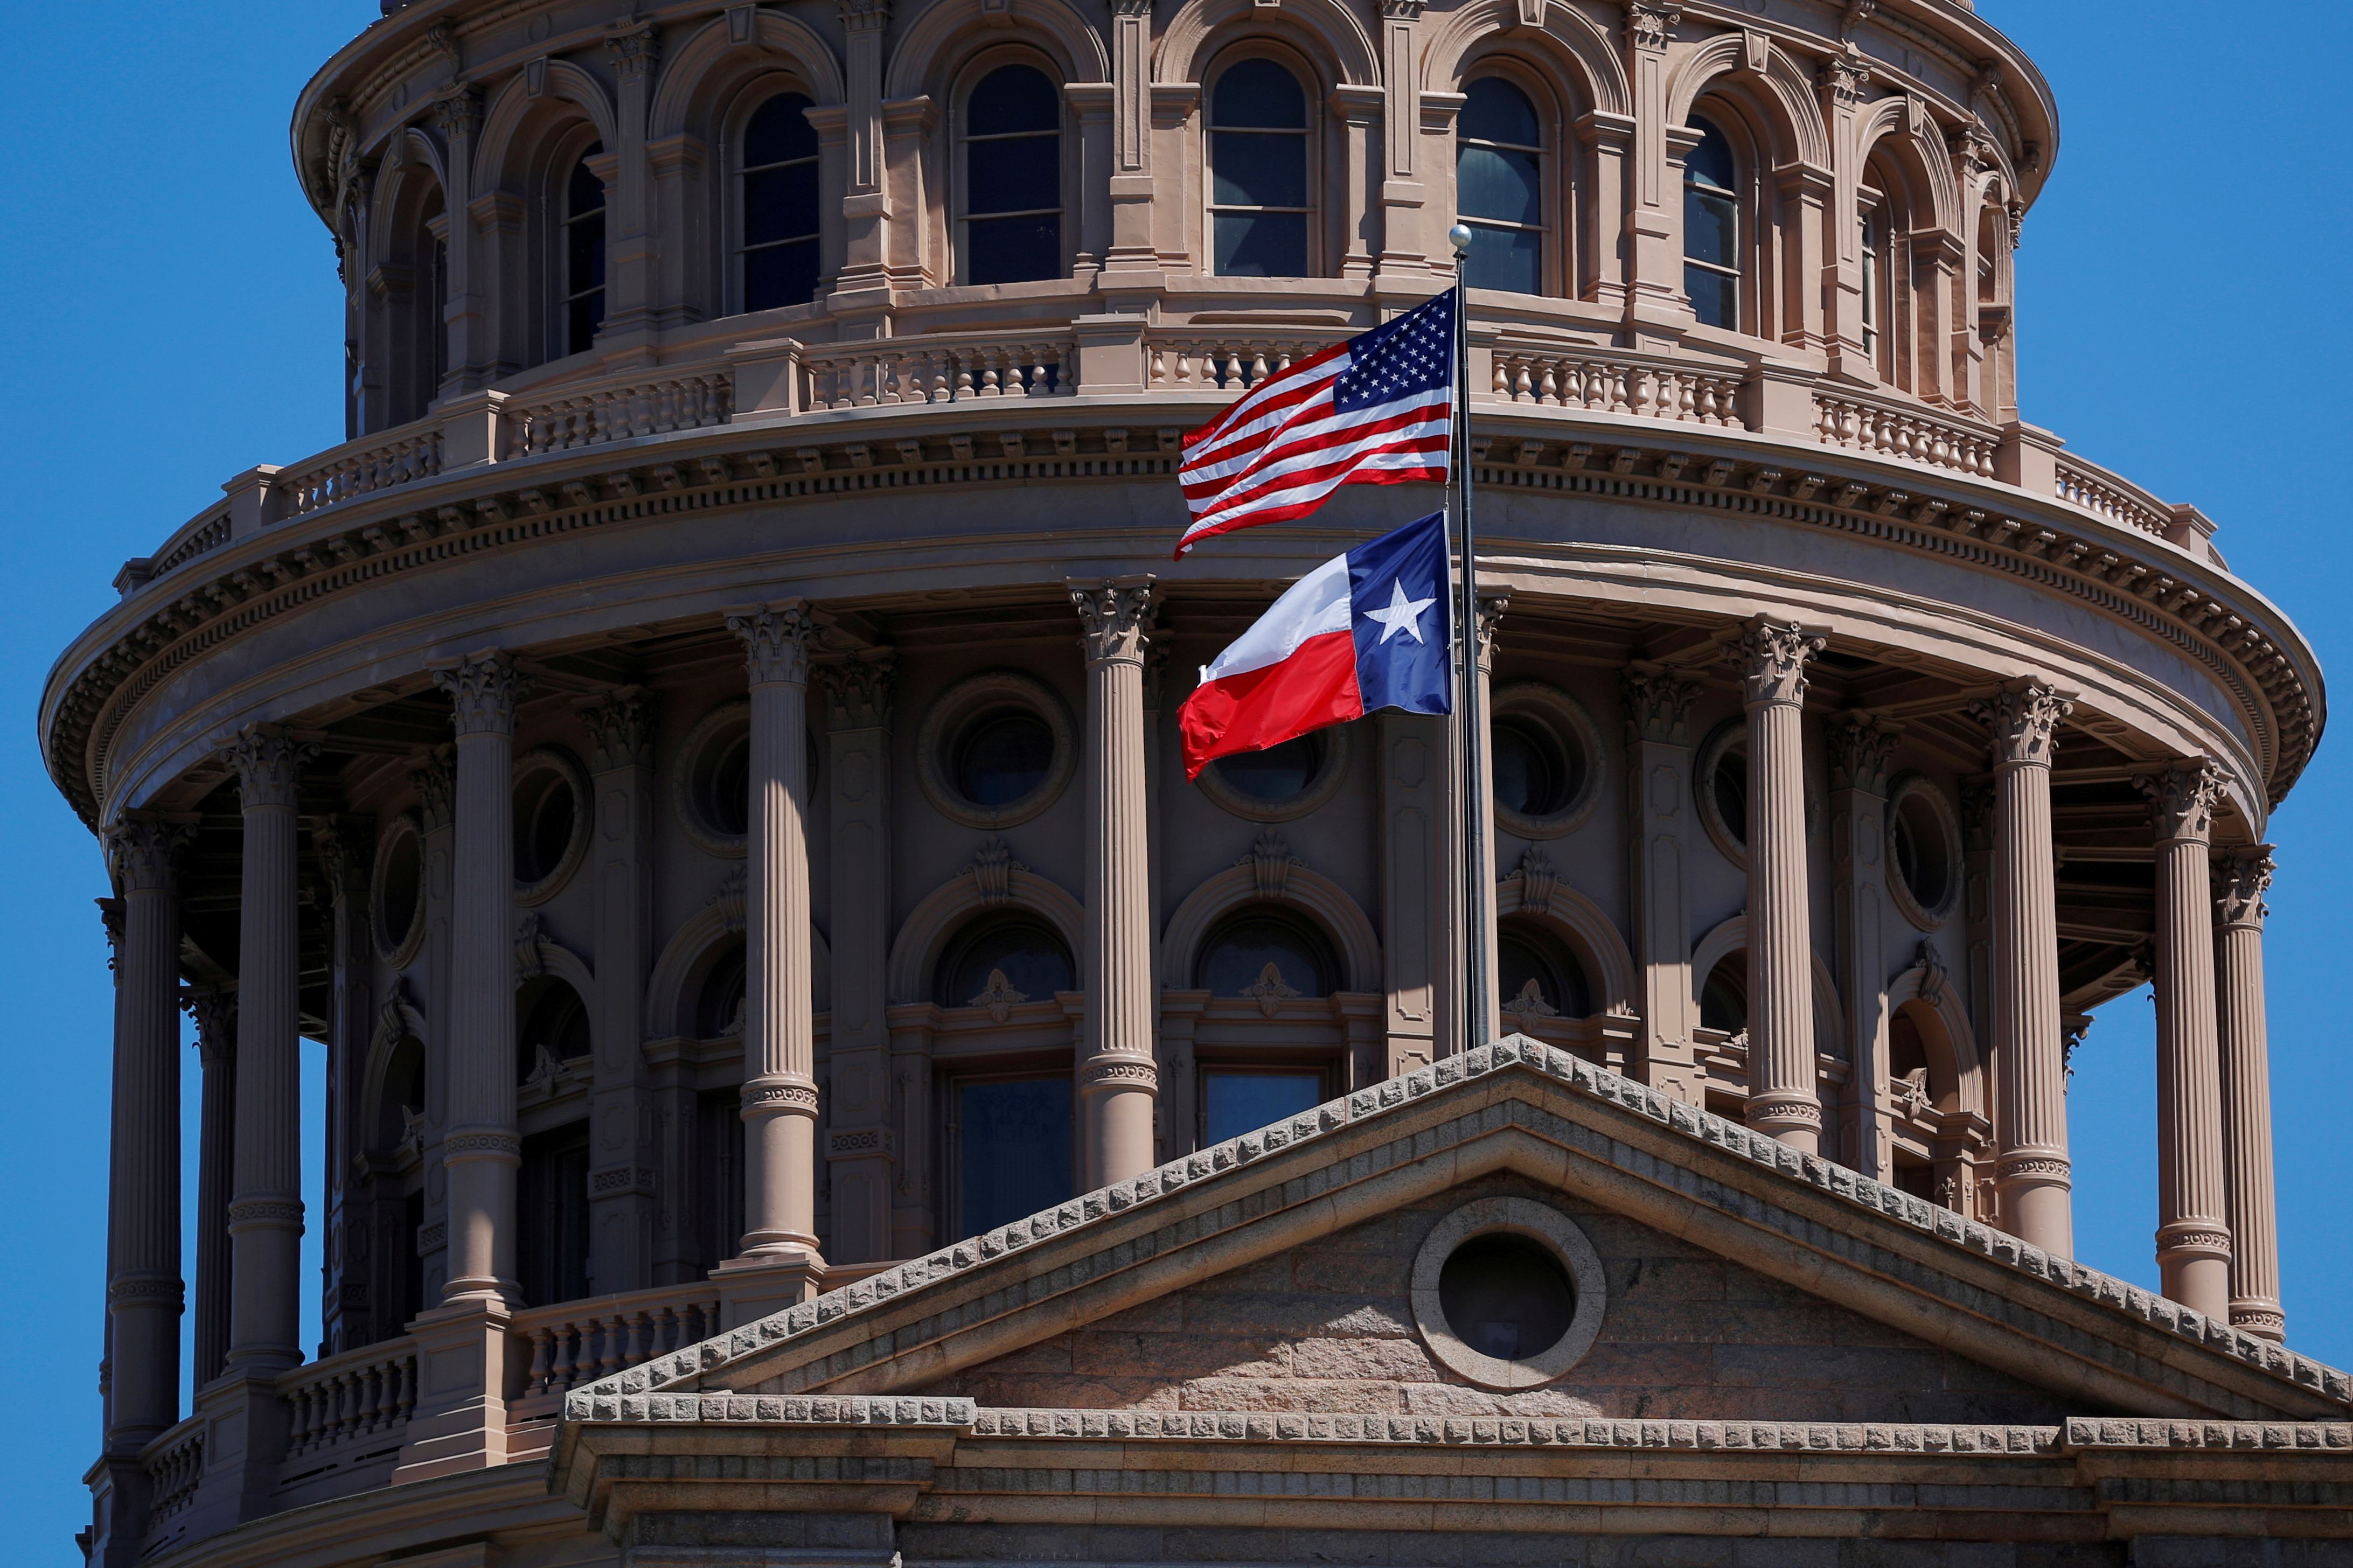 The U.S flag and the Texas State flag fly over the Texas State Capitol in Austin, Texas, U.S., March 14, 2017. REUTERS/Brian Snyder/File Photo